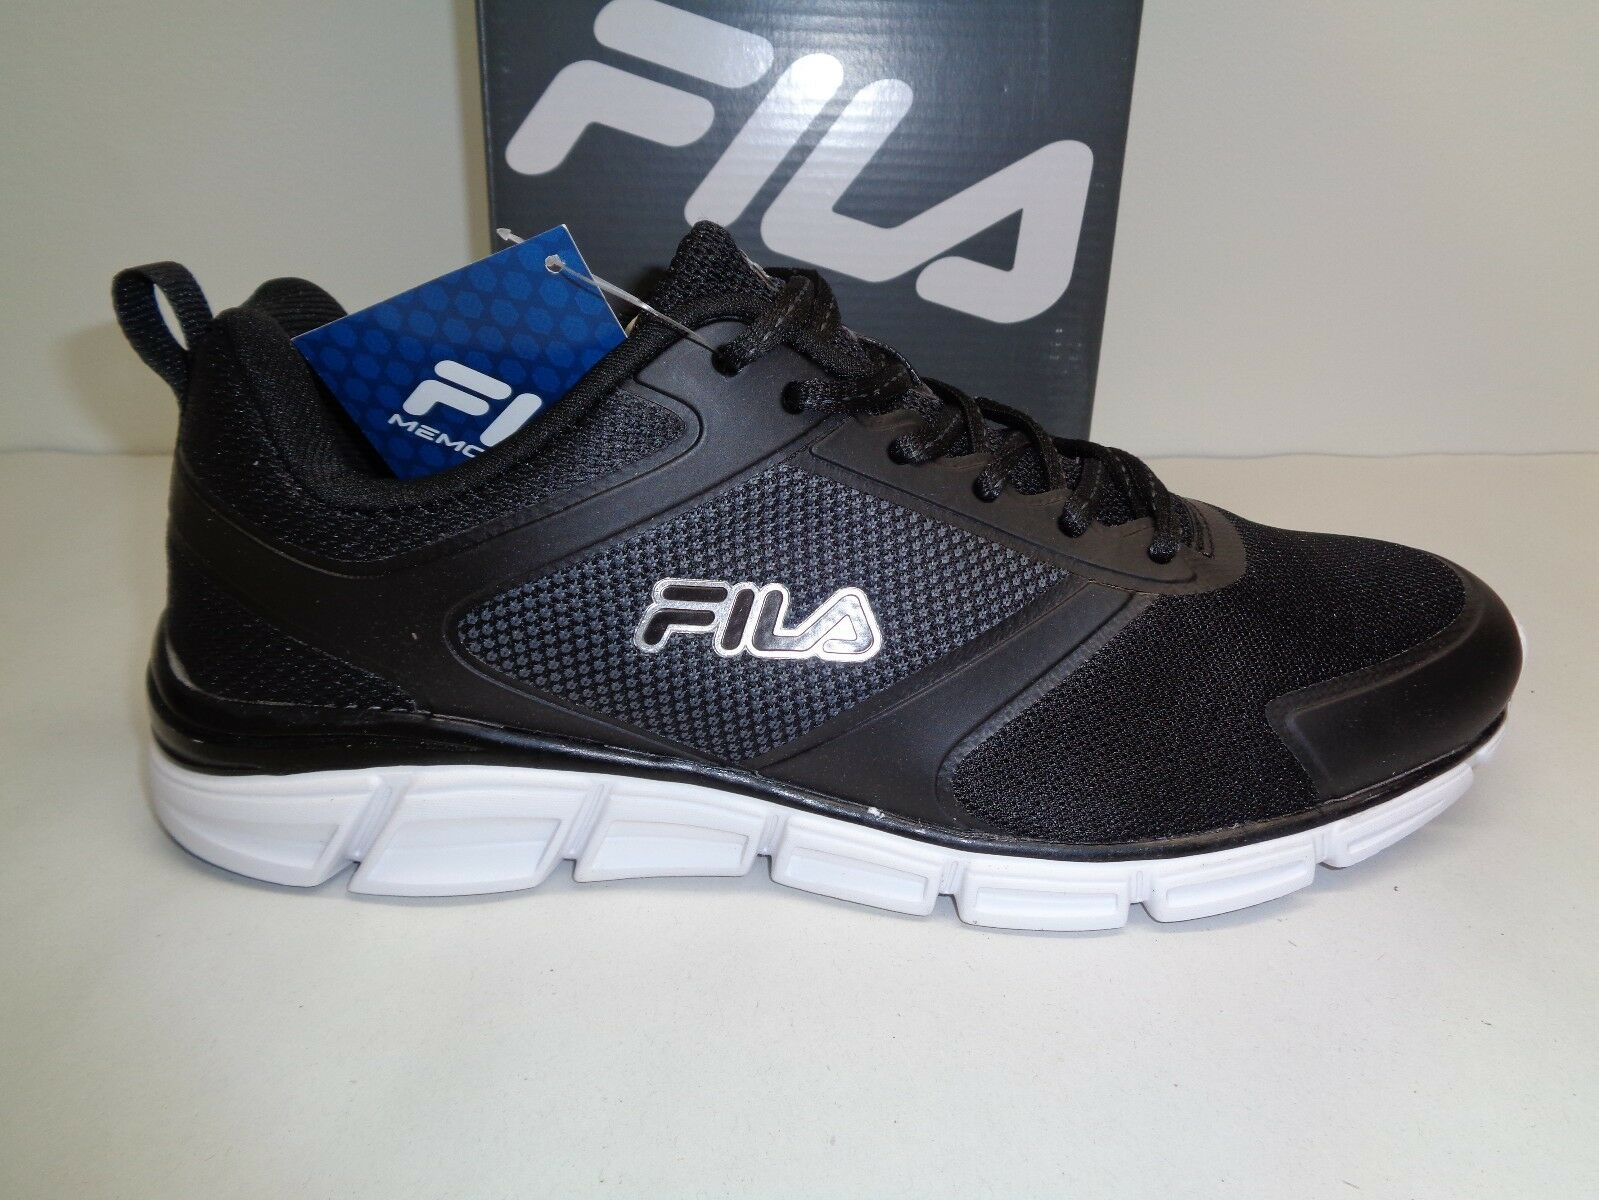 630a42b49615 UPC 607949000643 product image for Fila Men s Memory Steelsprint Athletic  Shoes Multiple Black Size 9.5 ...